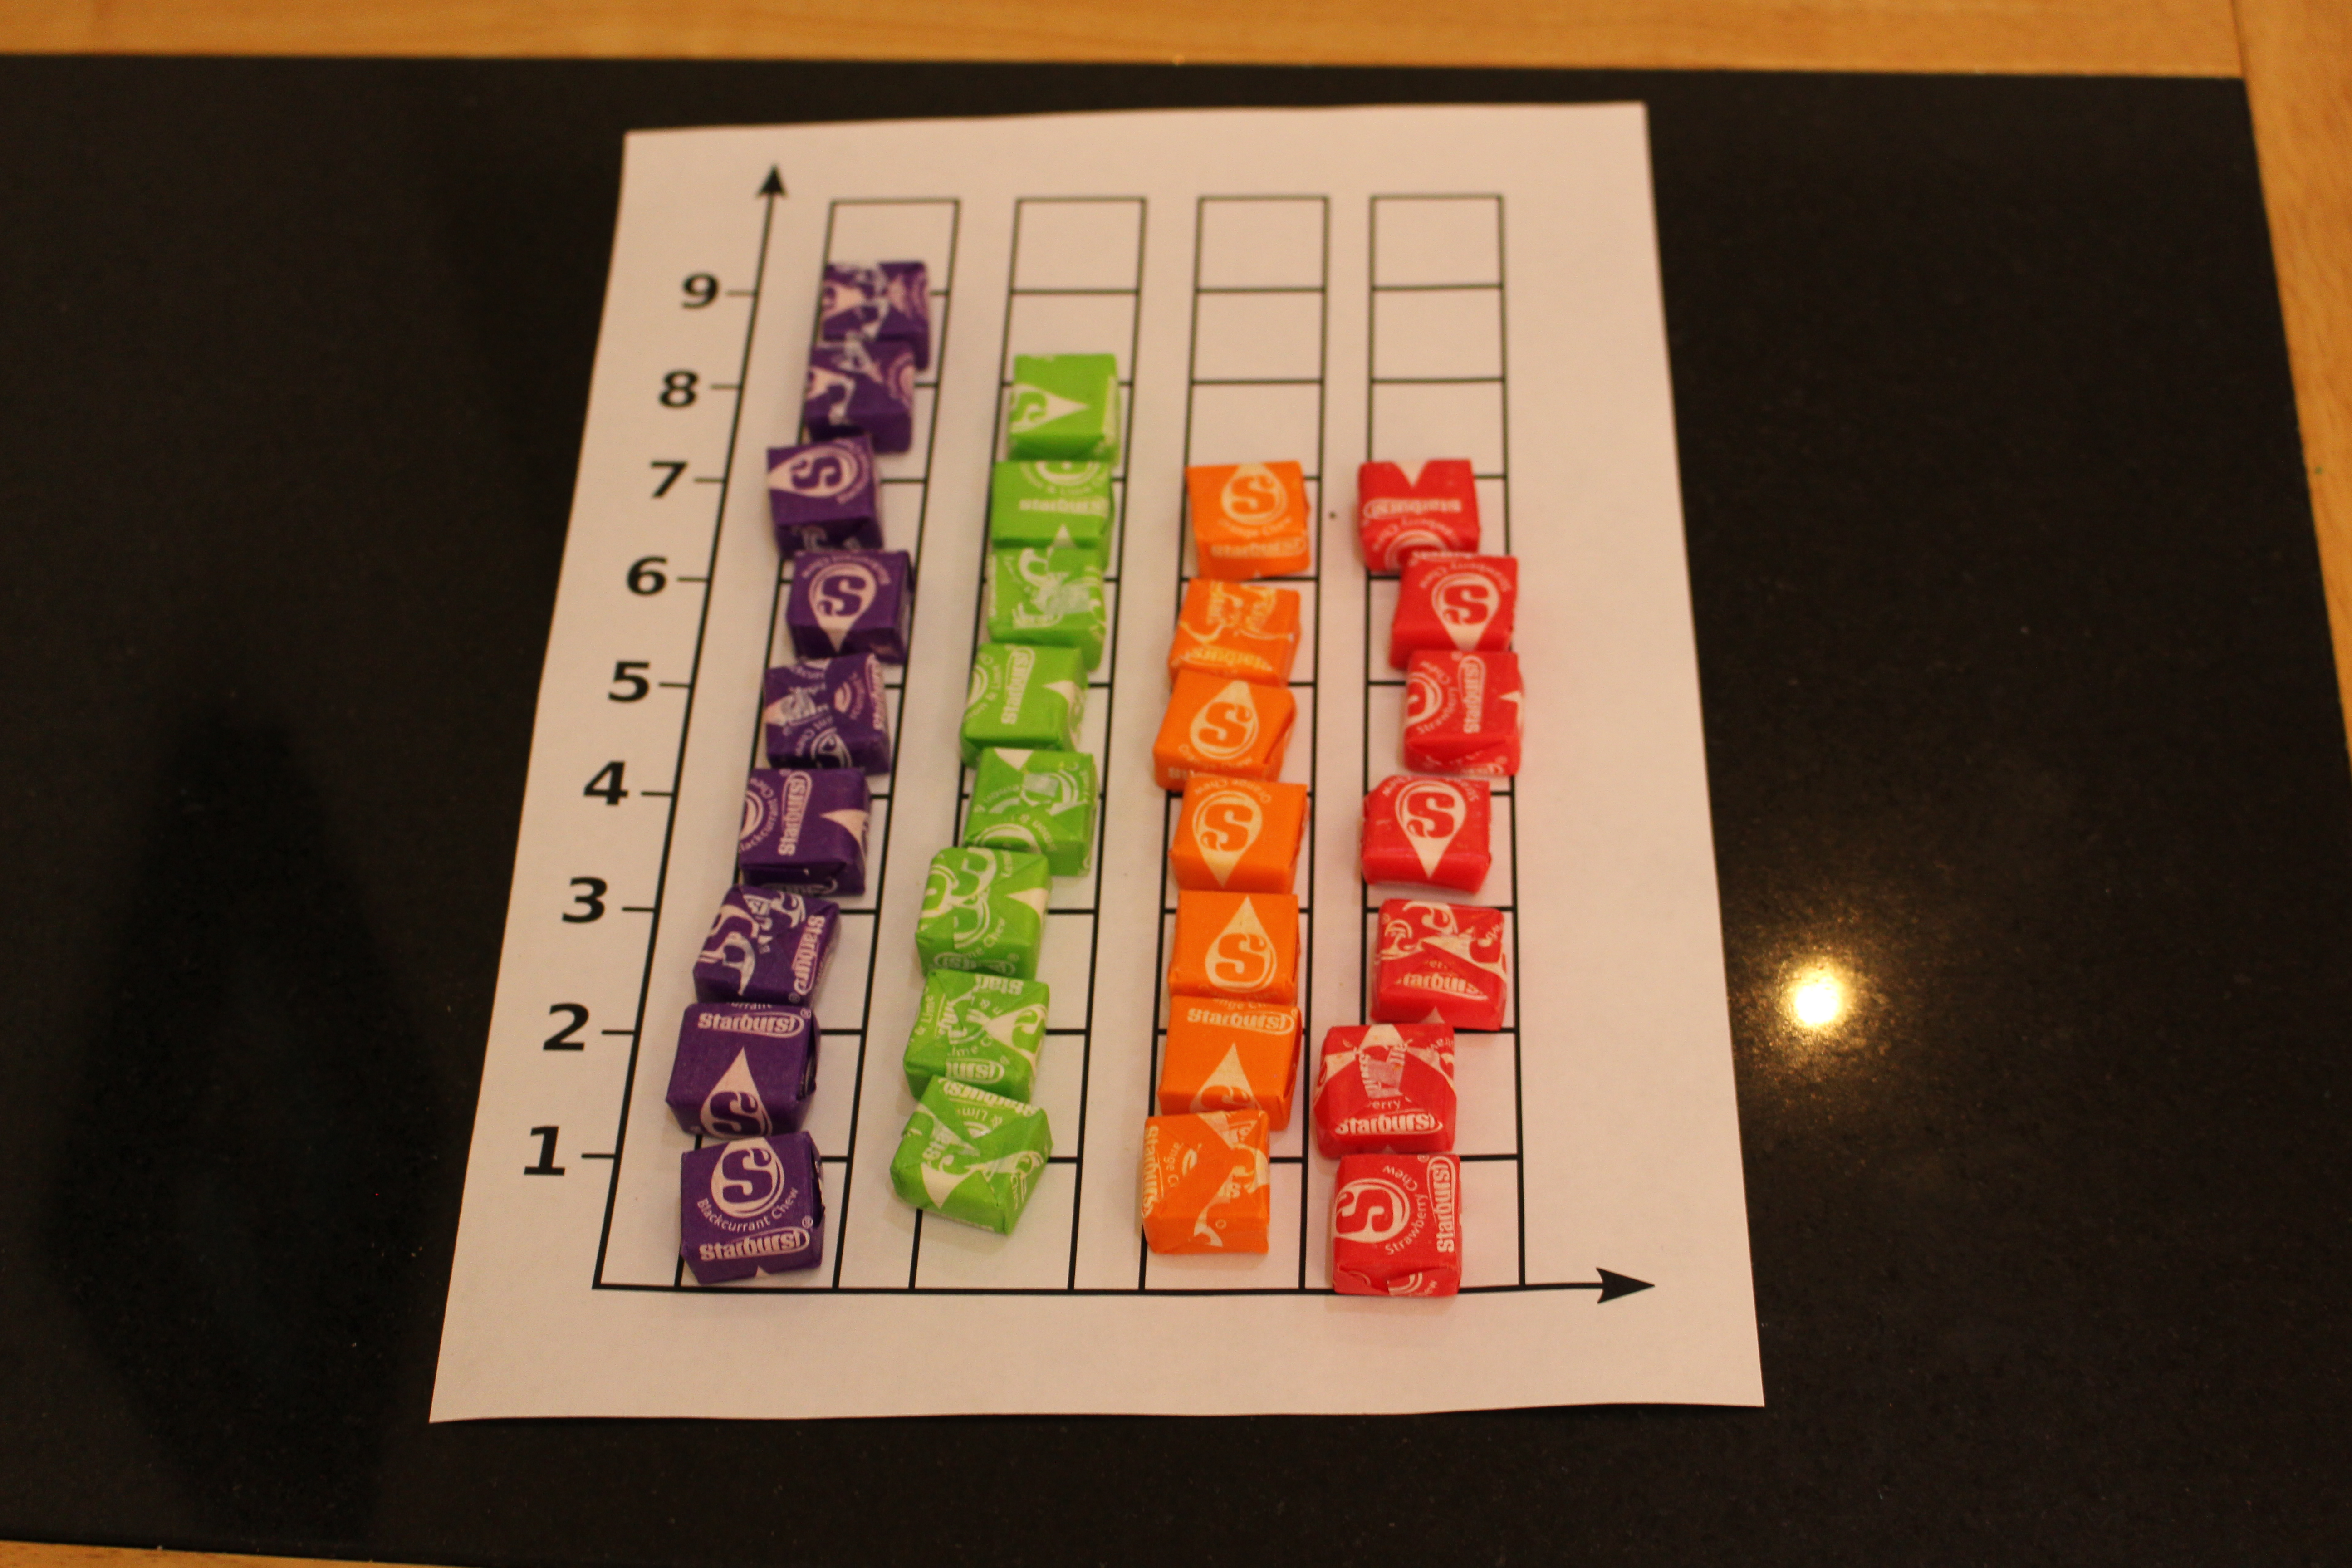 File:Candy bar graph made with Starburst candies jpg